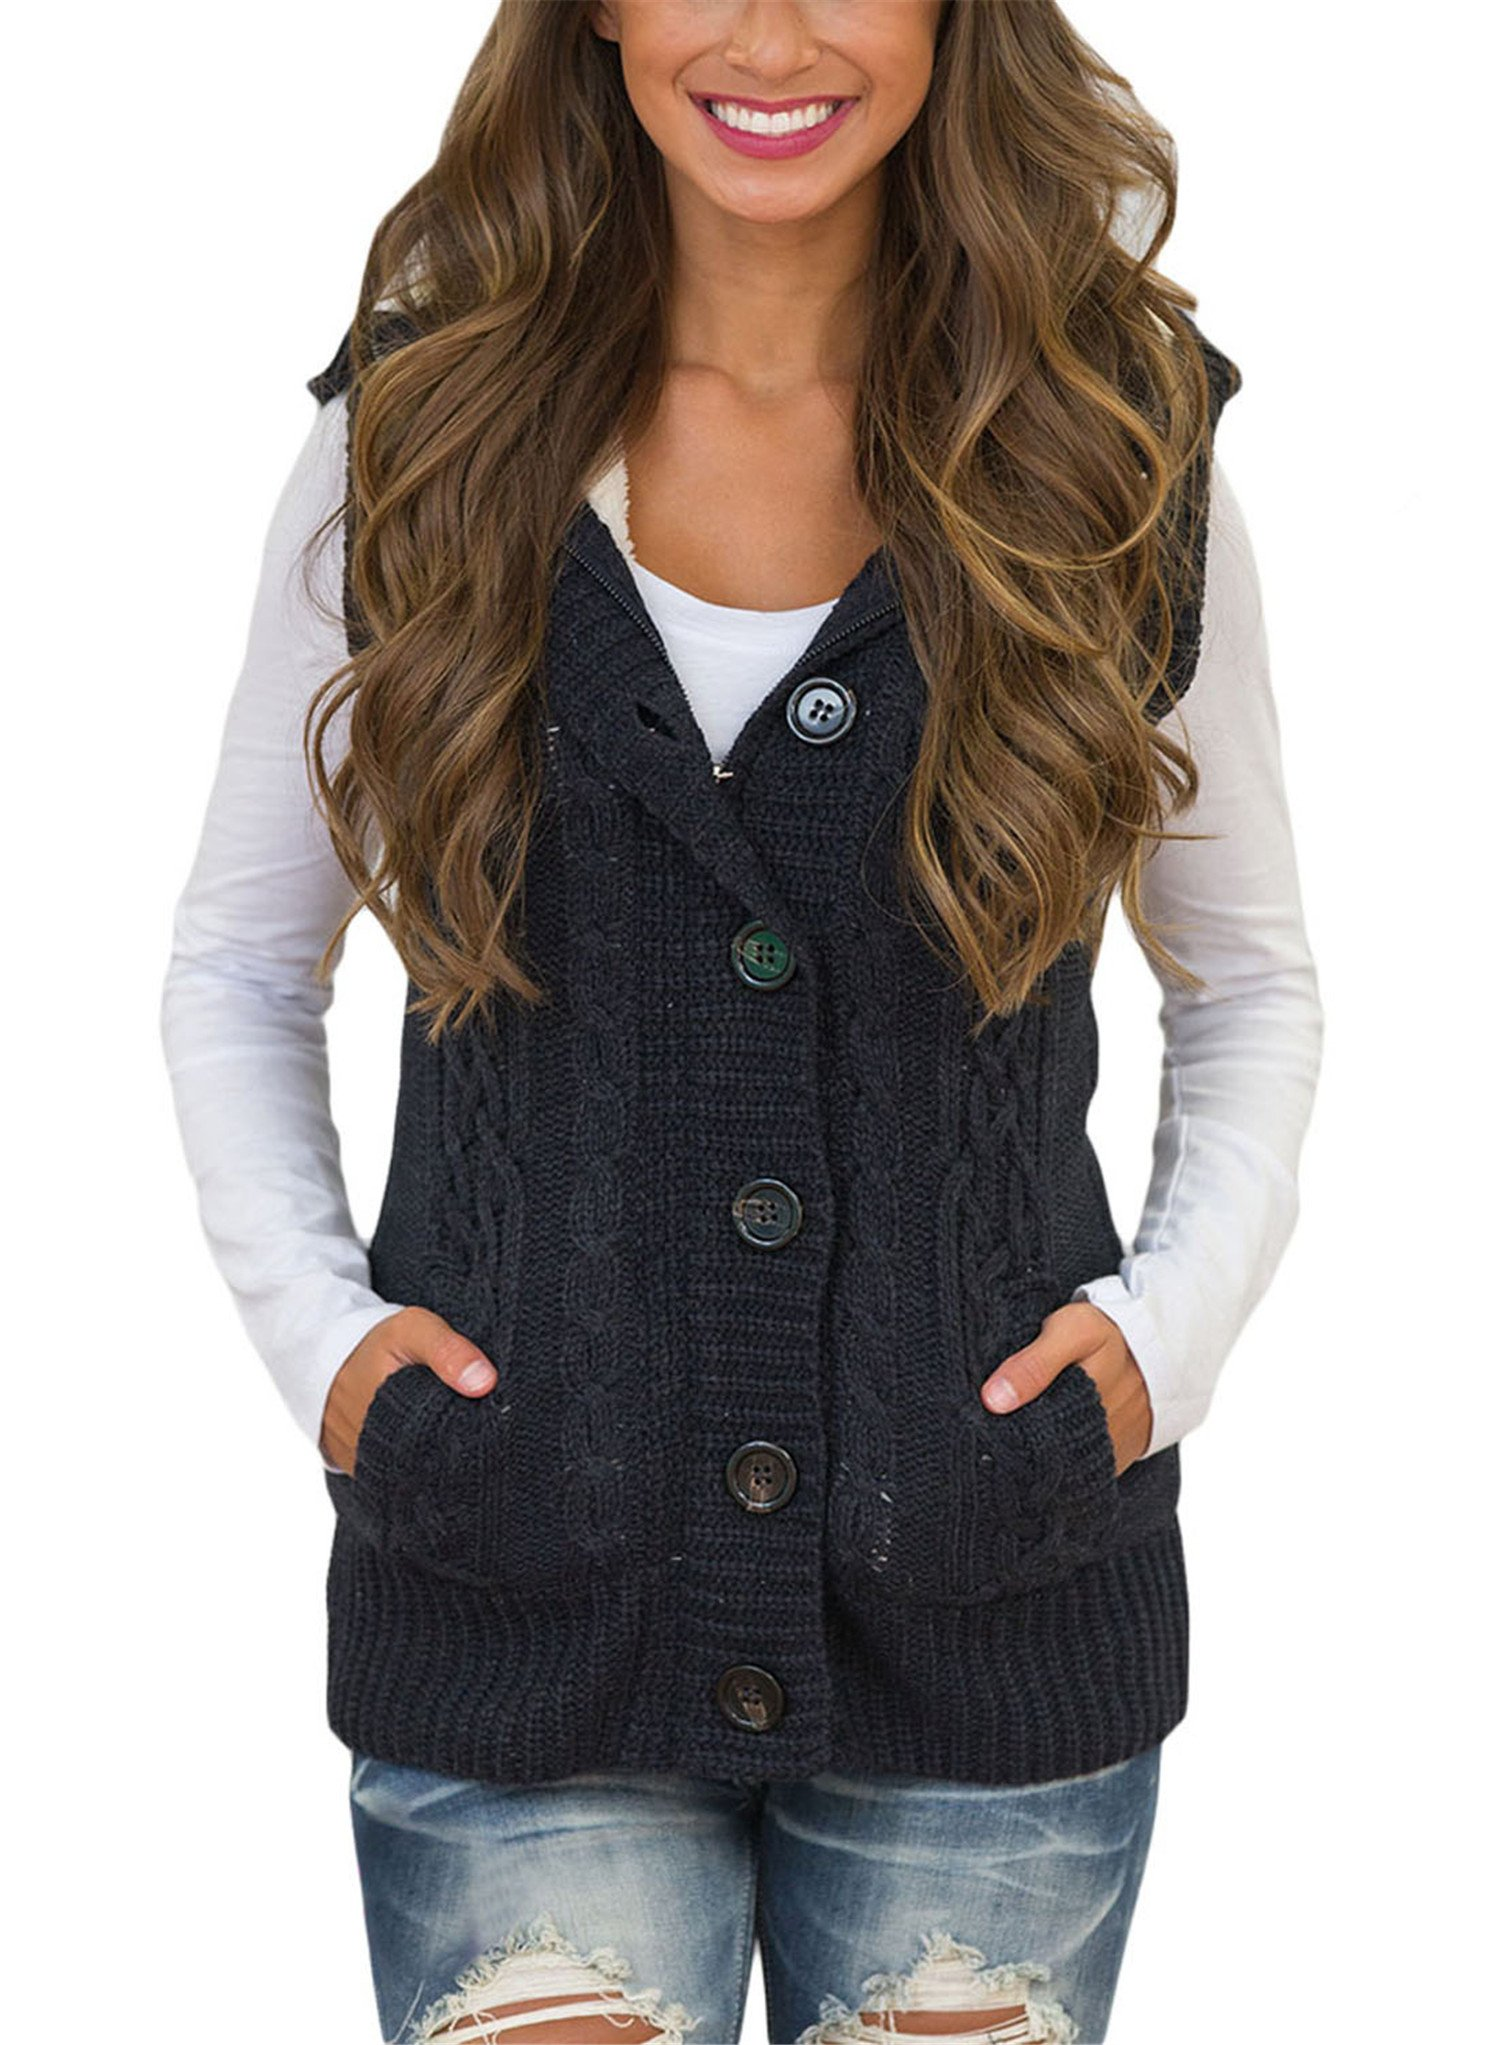 Blibea Womens Autumn Winter Sleeveless Hooded Sweater Vest Button Down Cable Knitted Cardigan Coats Outerwear Large Black by Blibea